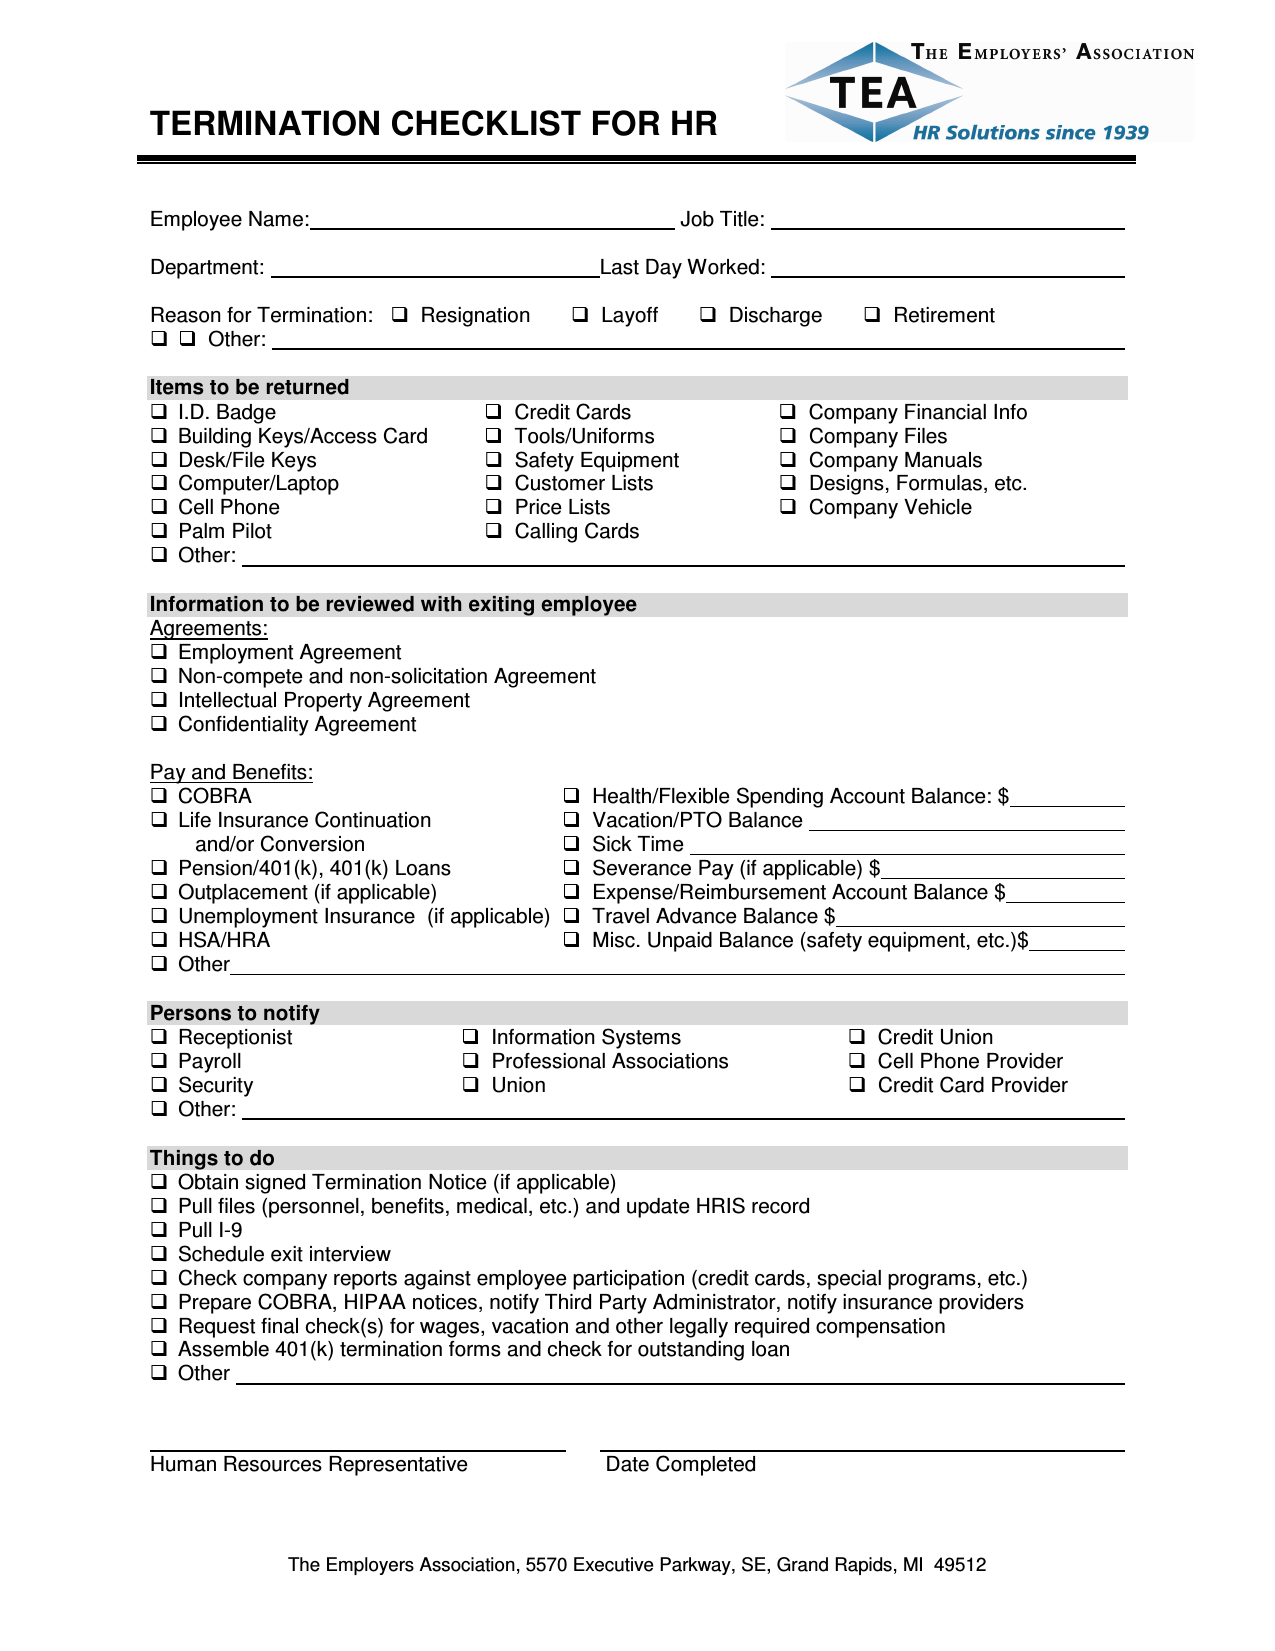 Download Termination Checklist Template | Excel | PDF | RTF | Word ...